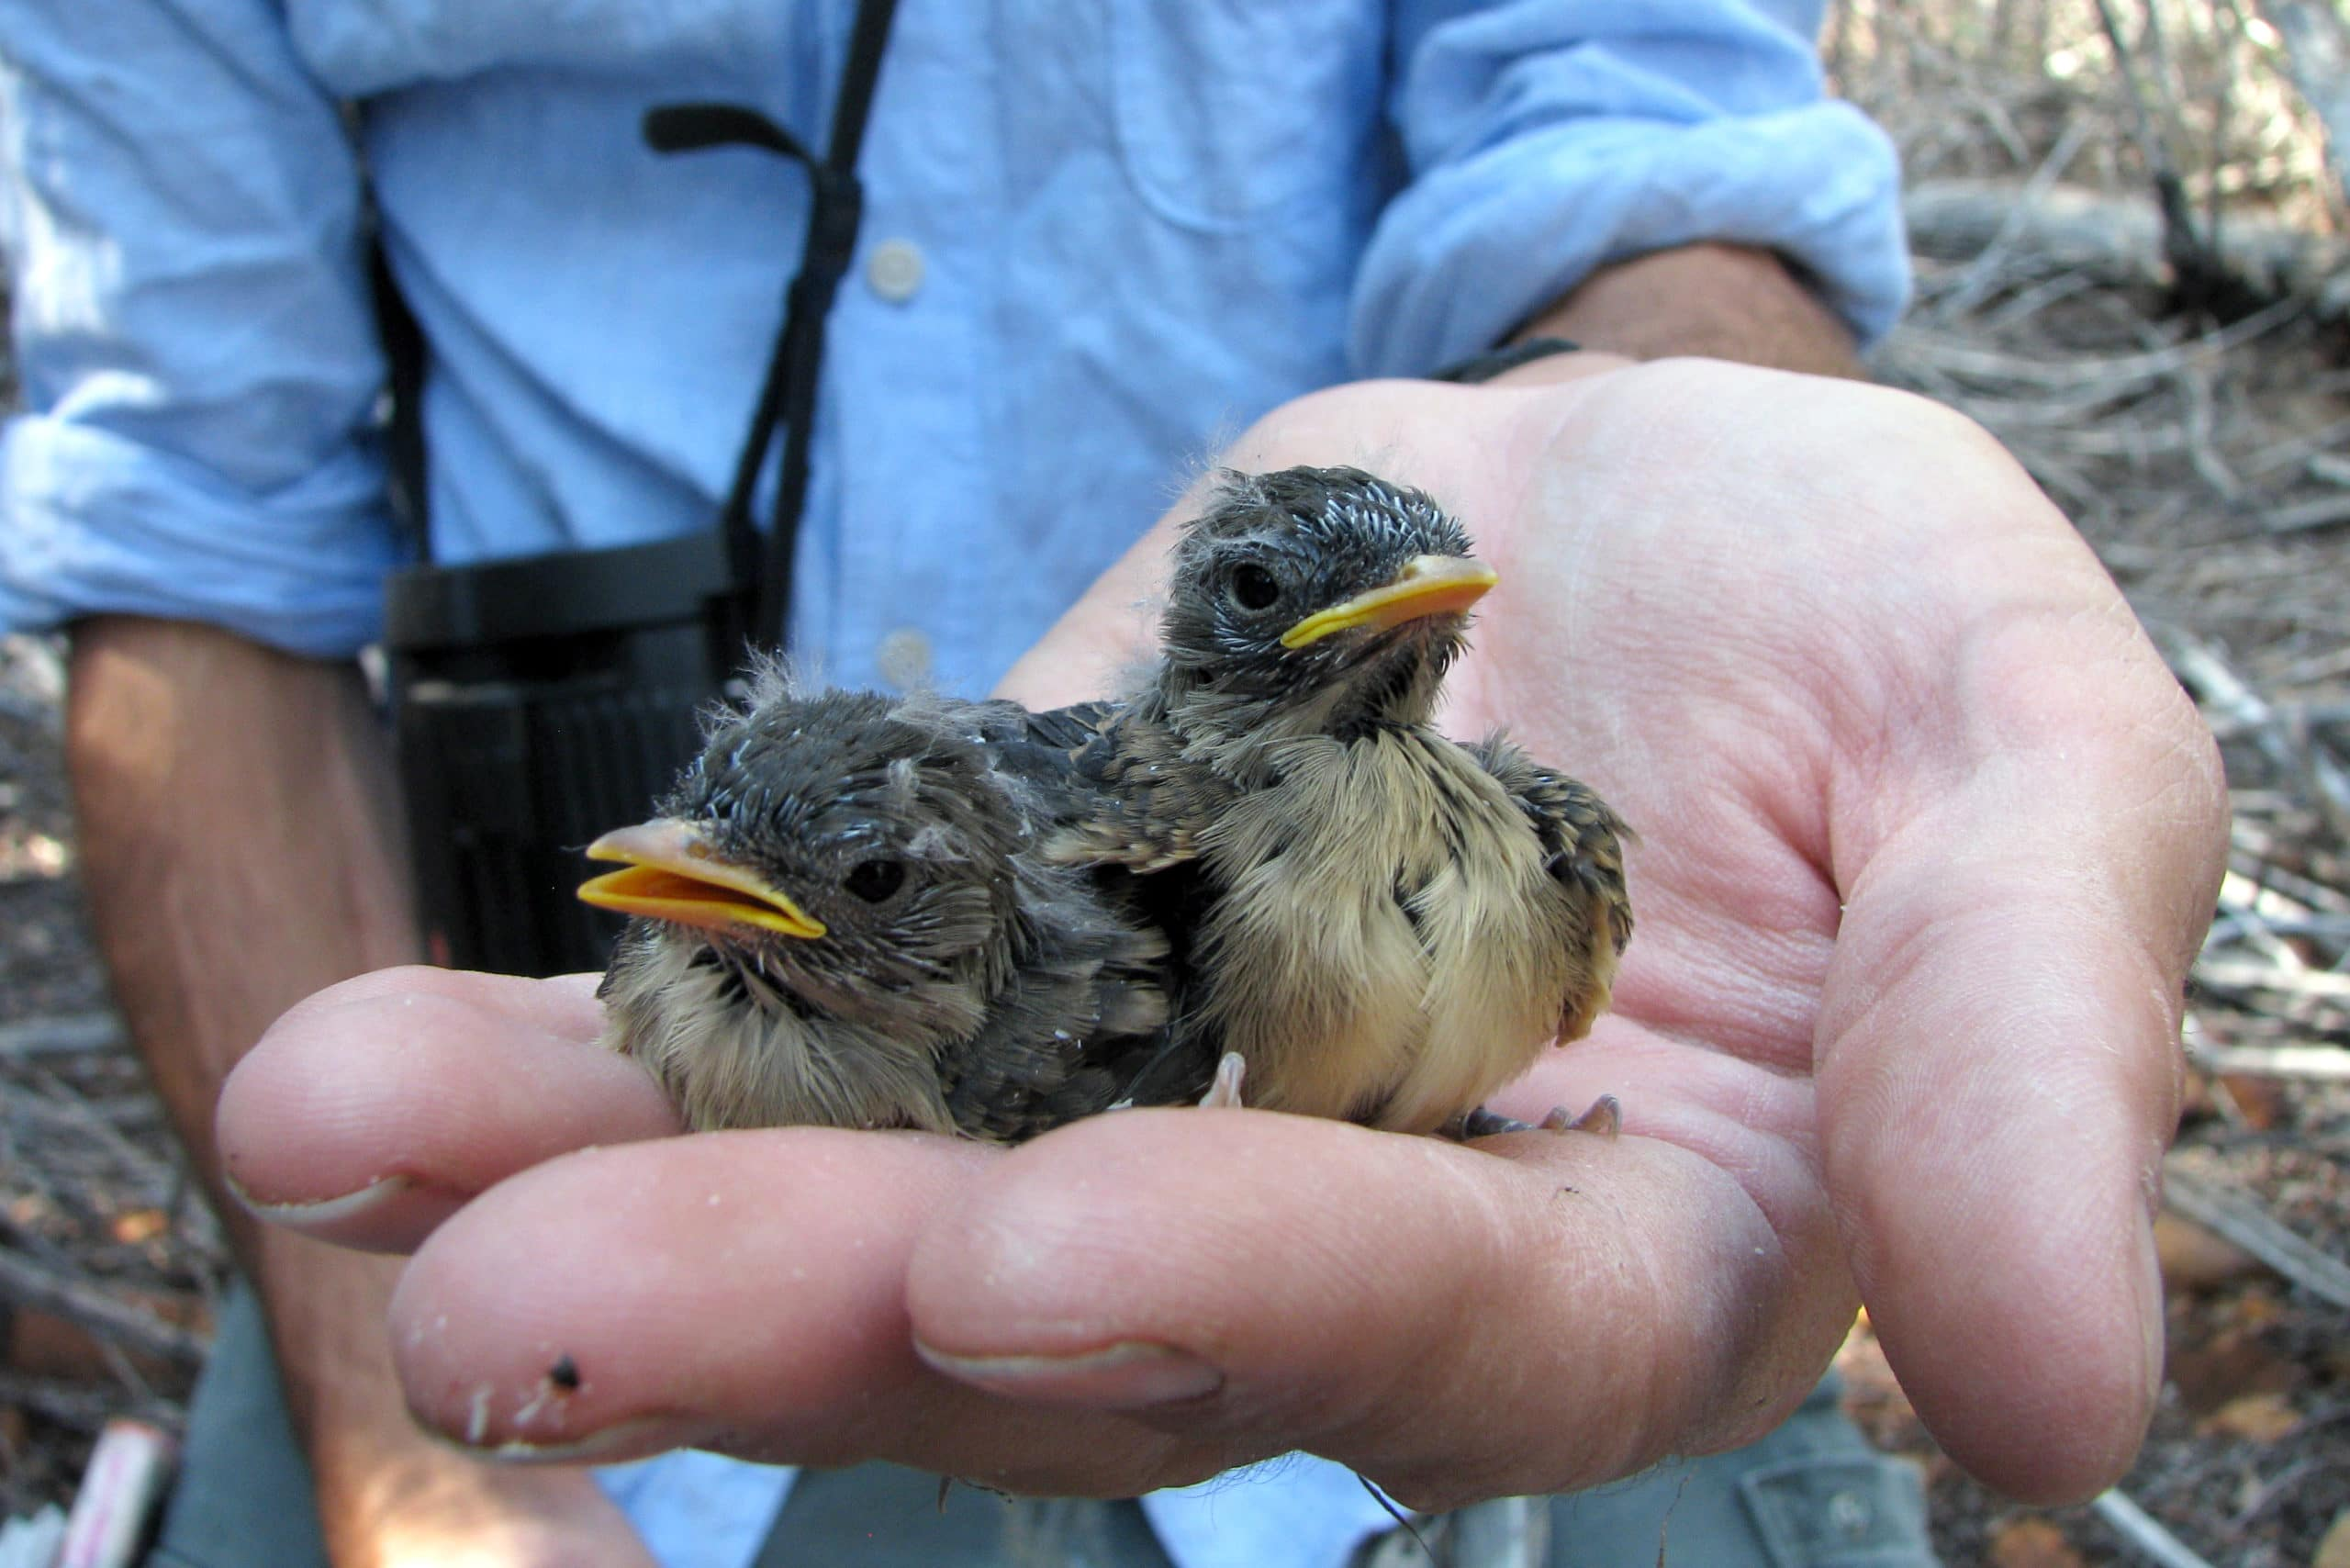 Two baby birds with scruffy feathers and bright yellow beaks being held in one hand of a bird researcher.